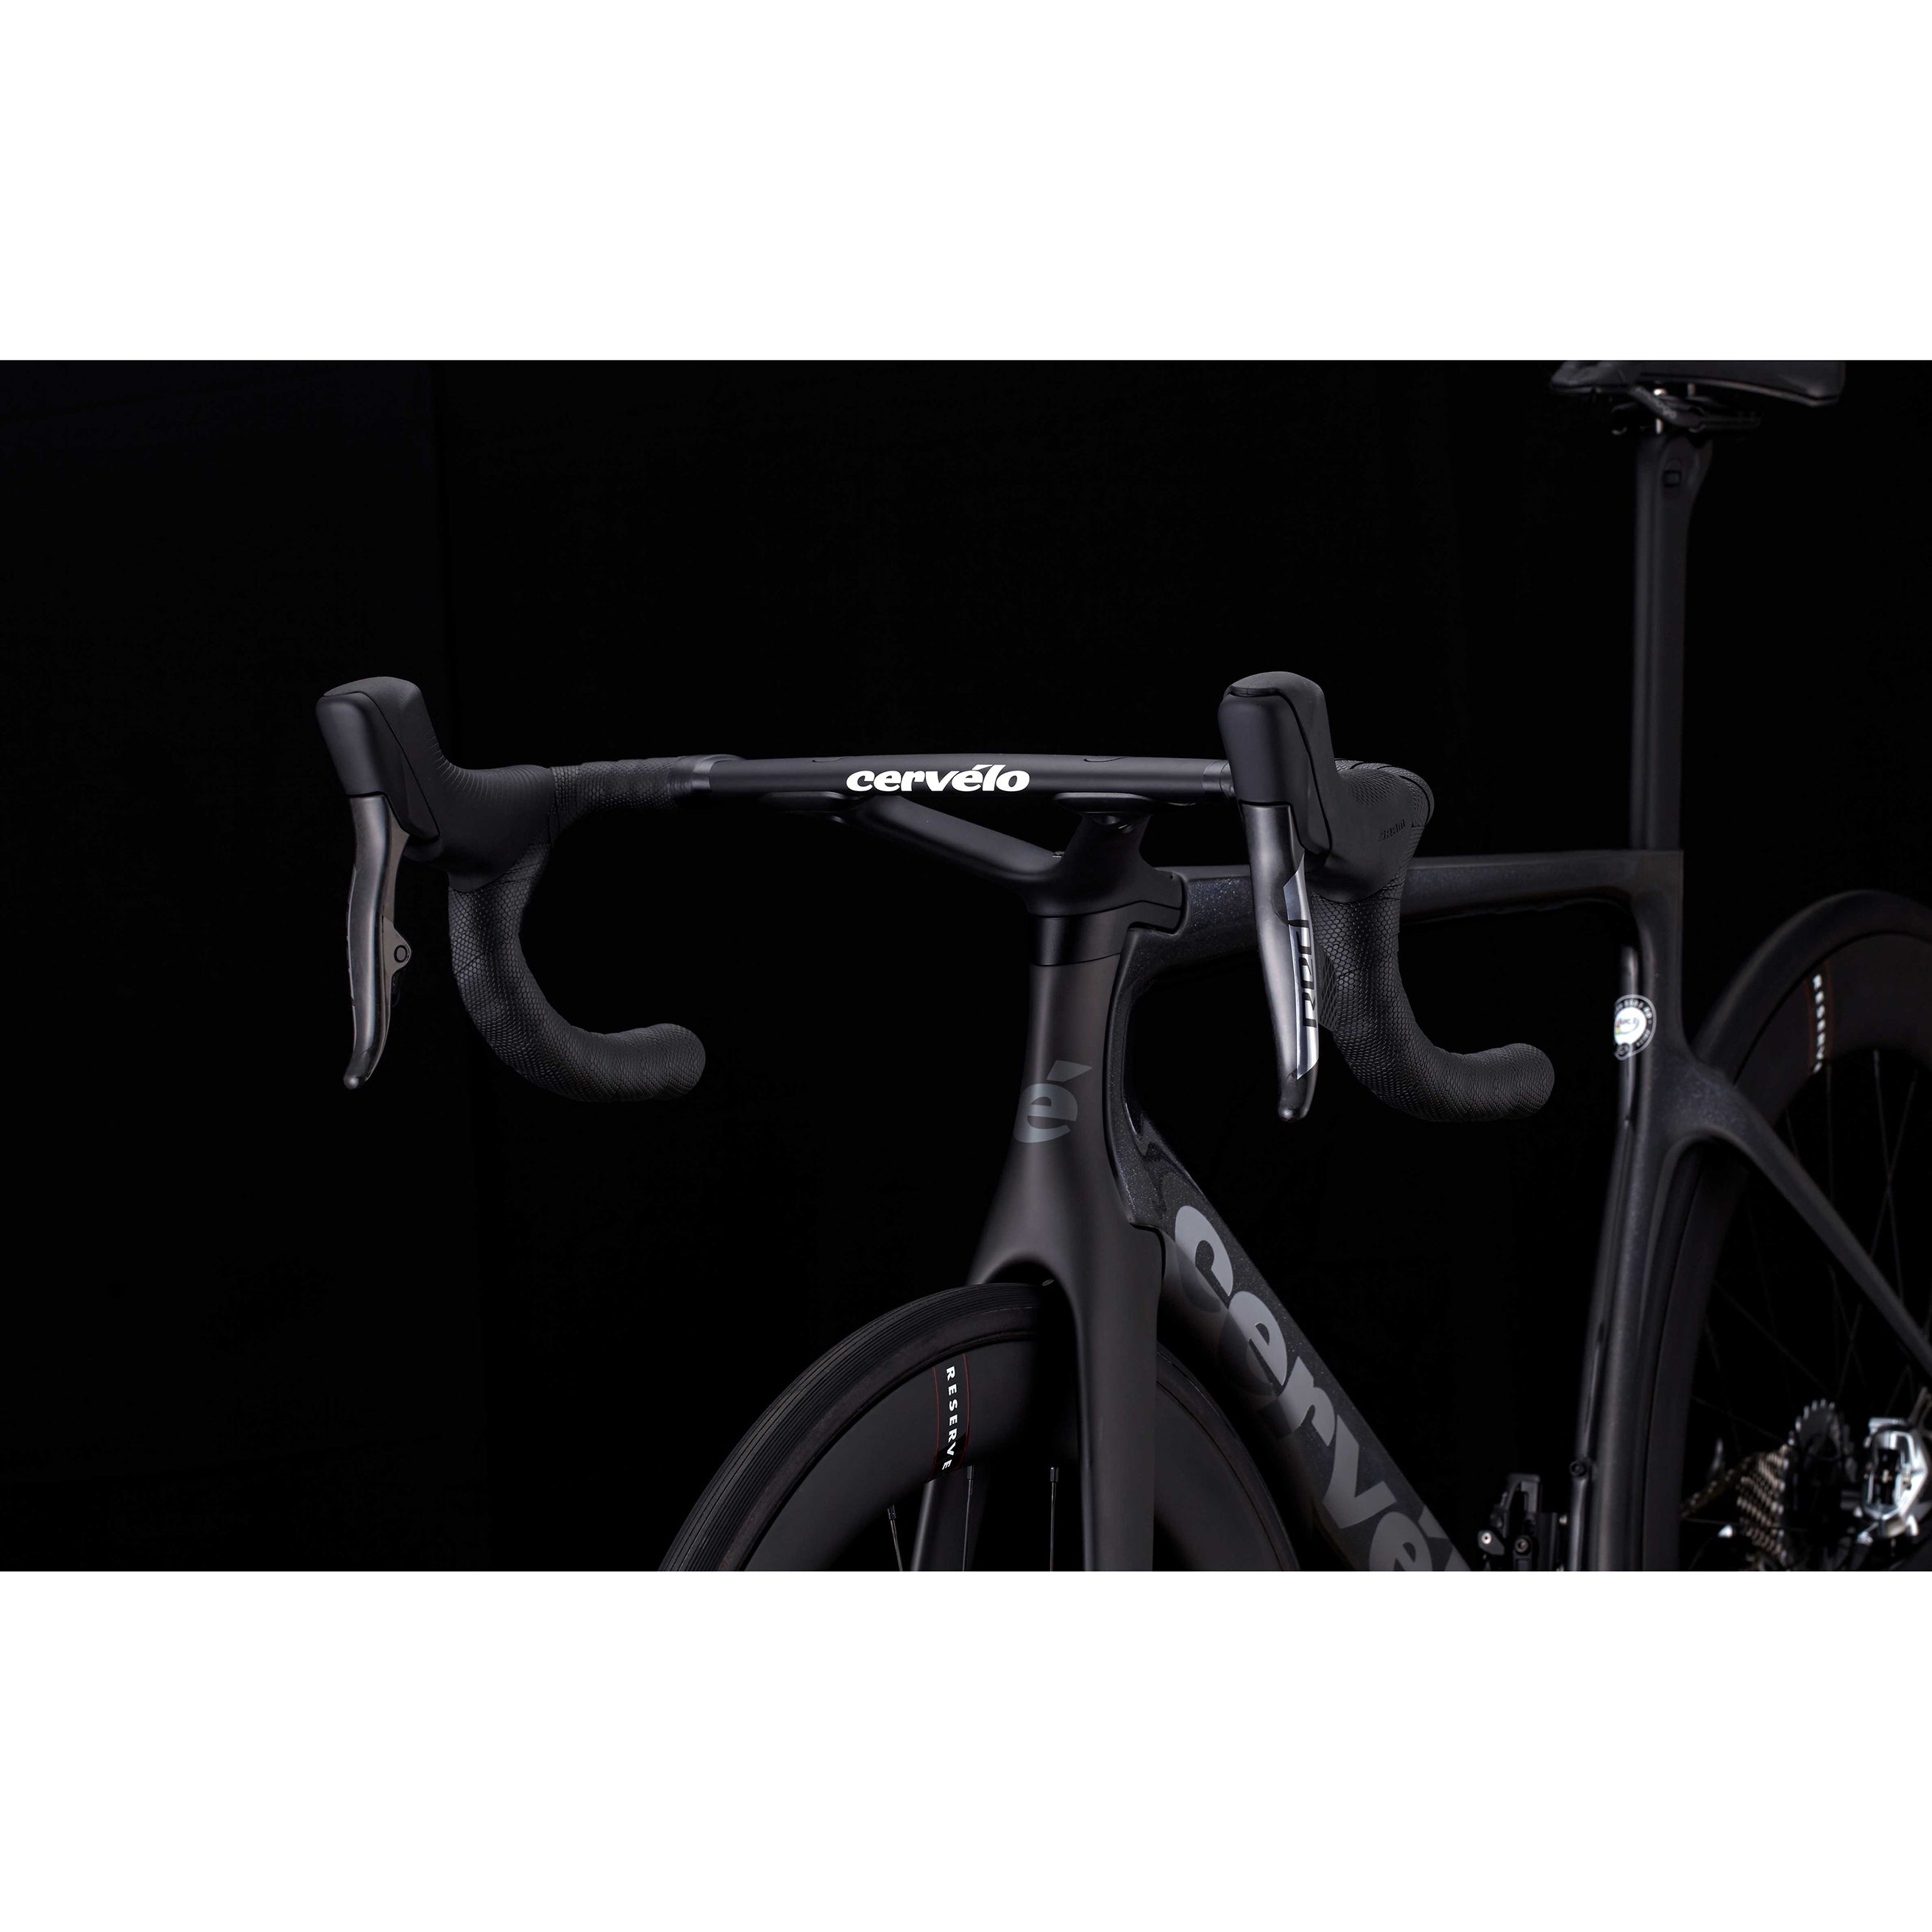 Cervelo S5 Disc SRAM RED eTap AXS Road Bike